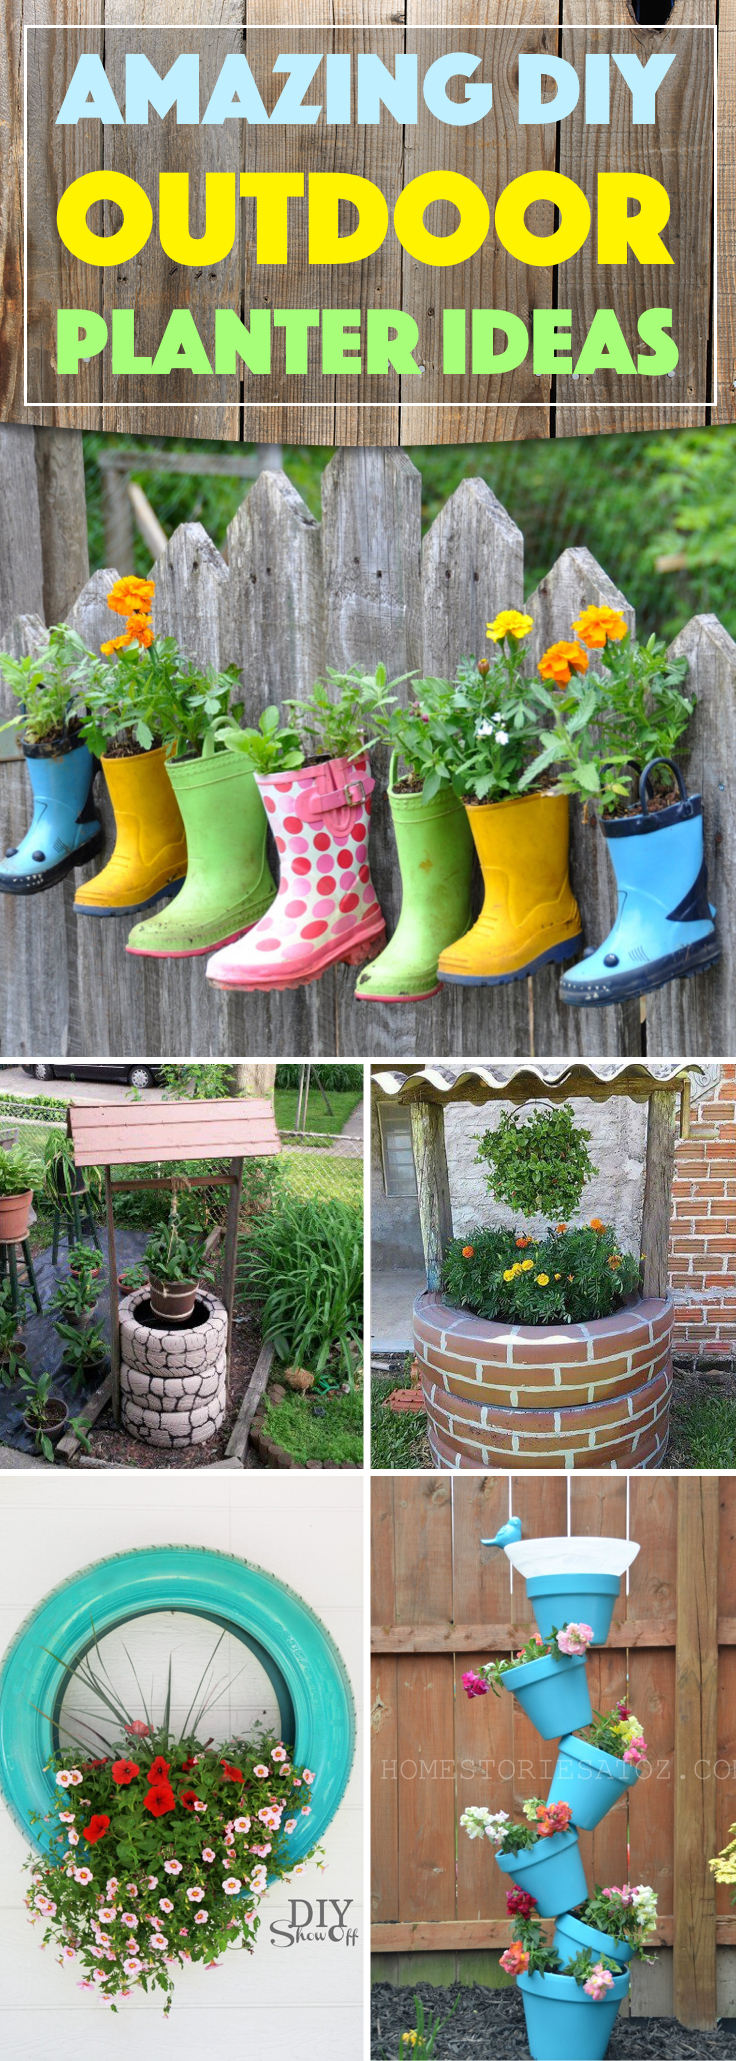 DIY Outdoor Planter Ideas